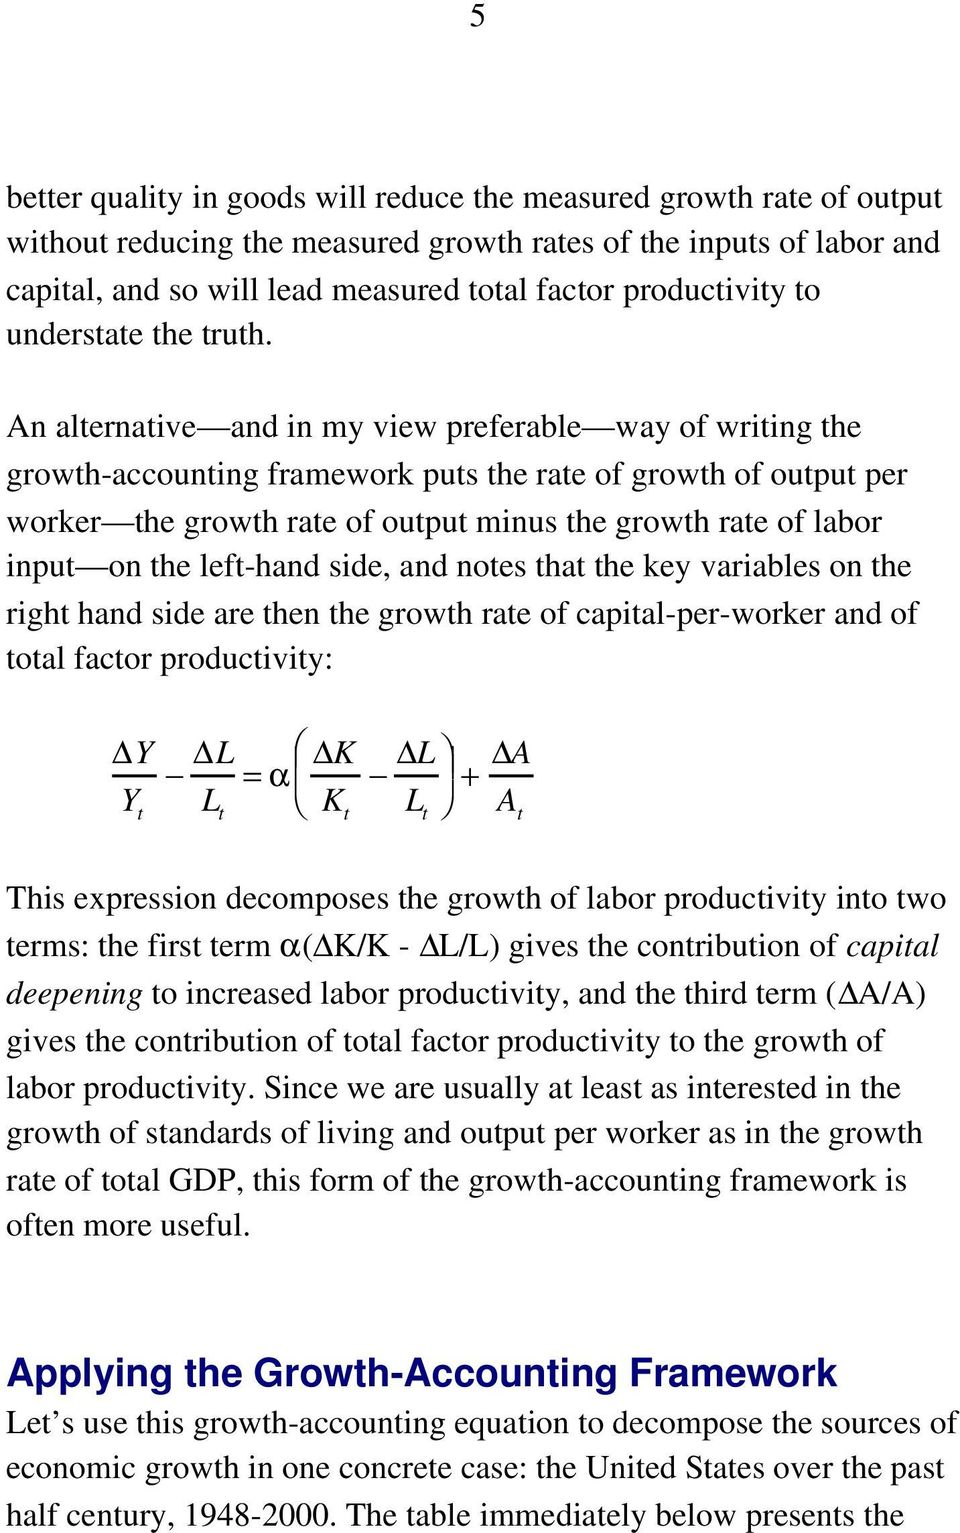 An alternative and in my view preferable way of writing the growth-accounting framework puts the rate of growth of output per worker the growth rate of output minus the growth rate of labor input on